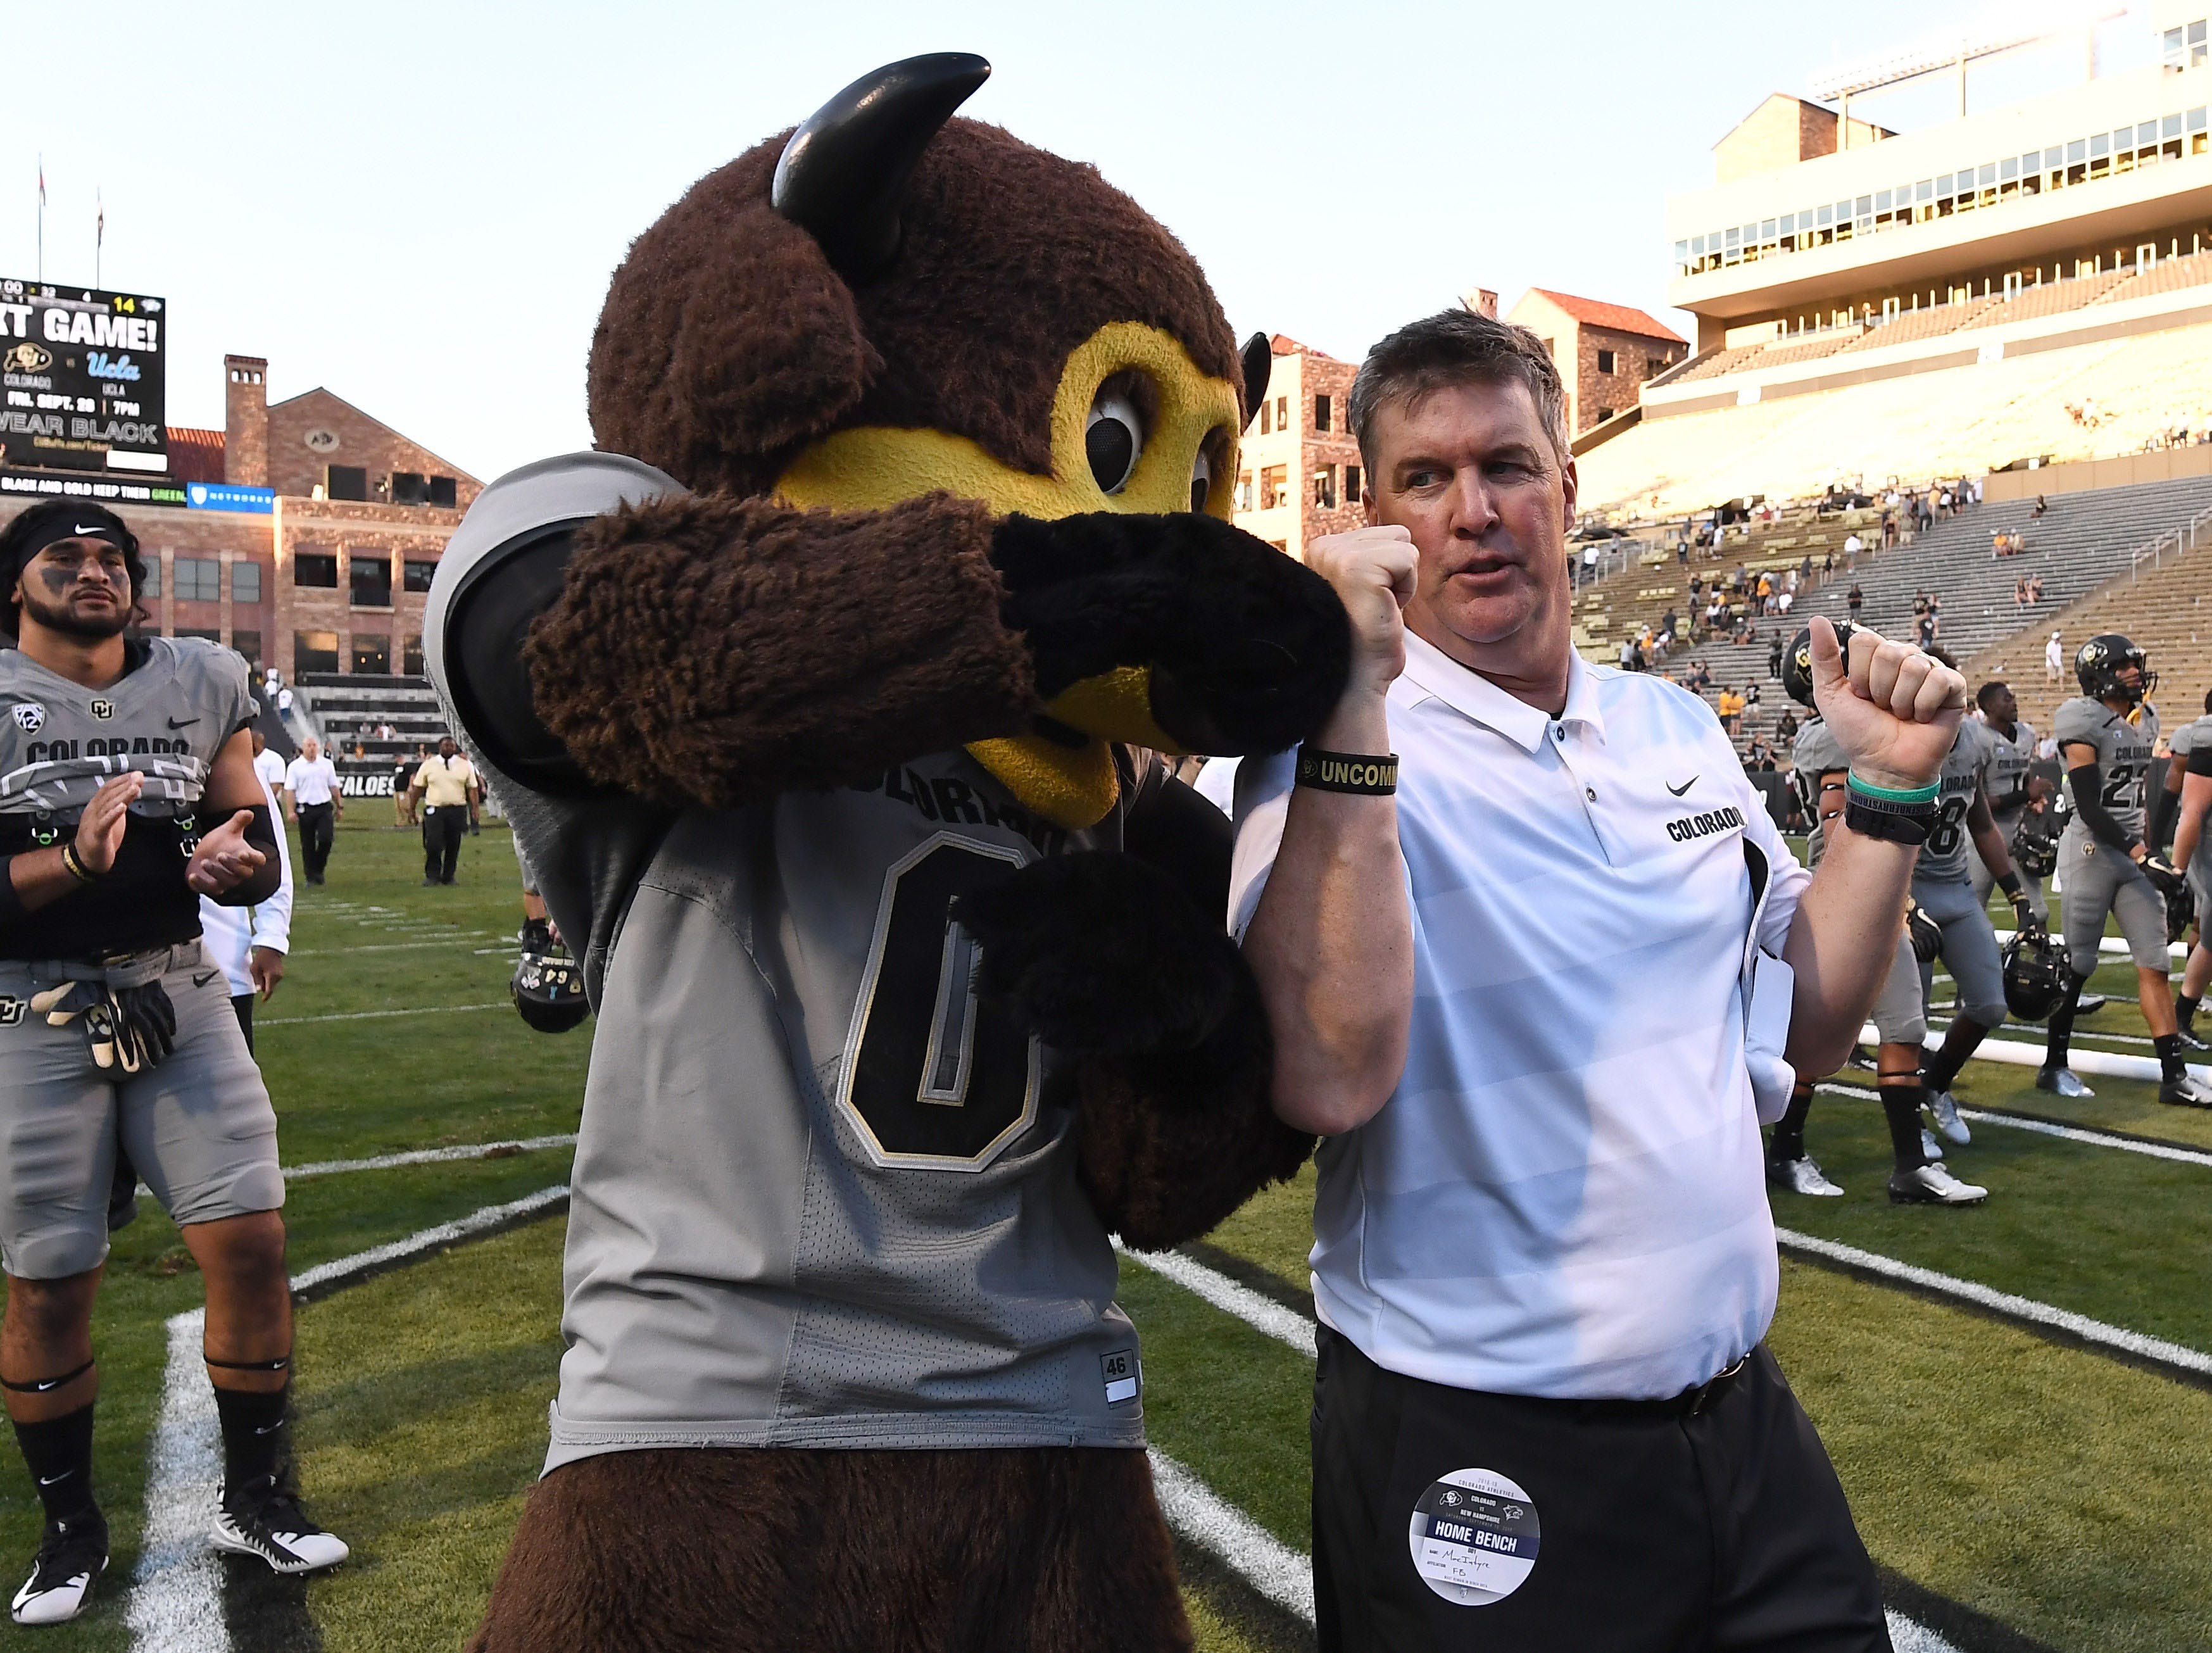 Week 3: Colorado Buffaloes head coach Mike MacIntyre fist-bumps mascot Chip following a win over the New Hampshire Wildcats at Folsom Field.